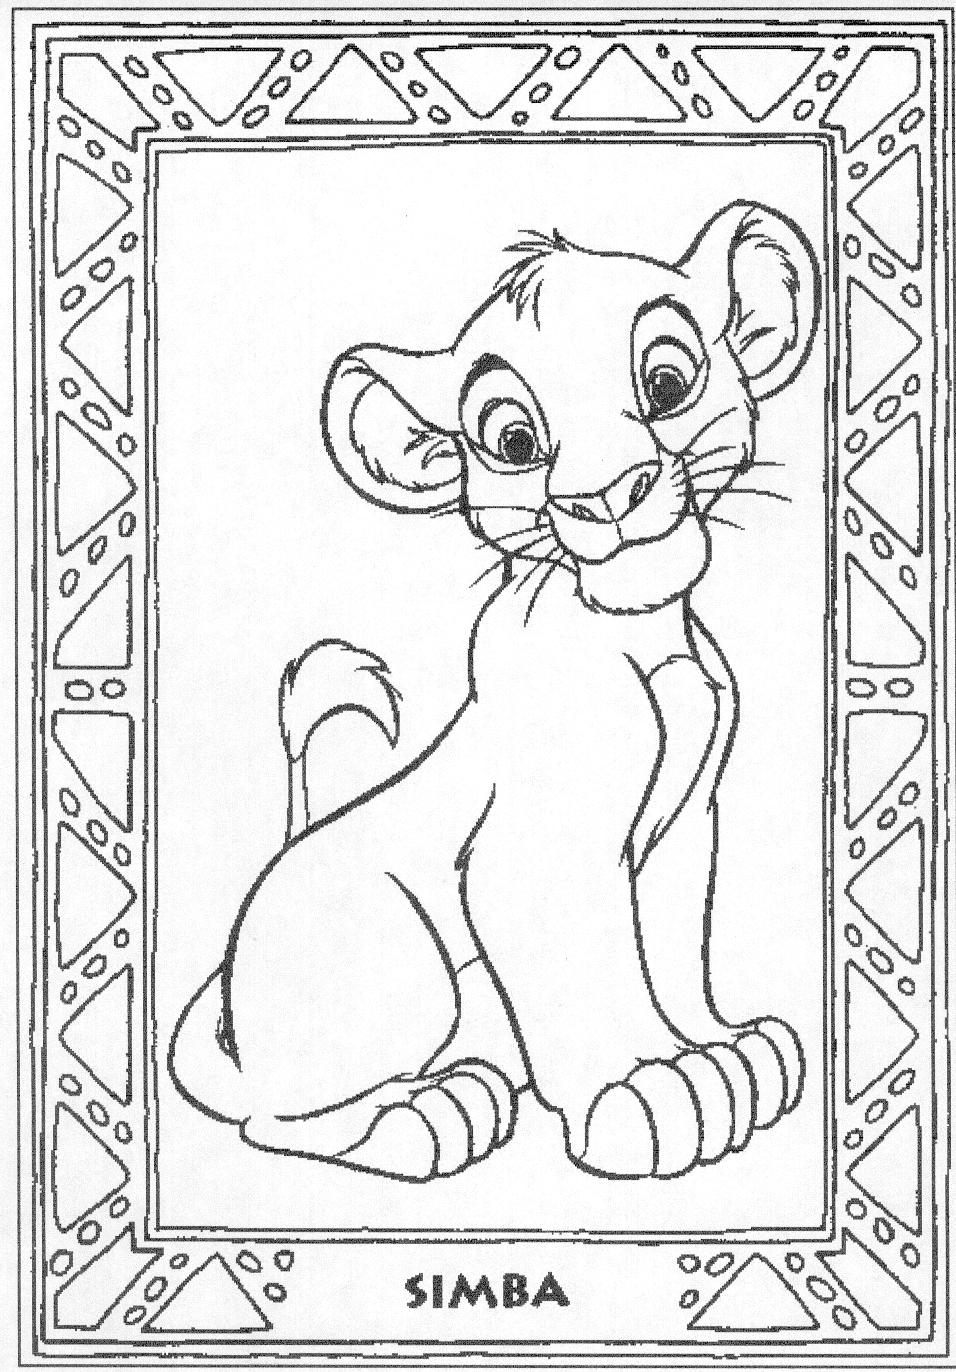 free lion king coloring pages free 17 disney coloring pages in psd ai free lion pages coloring king